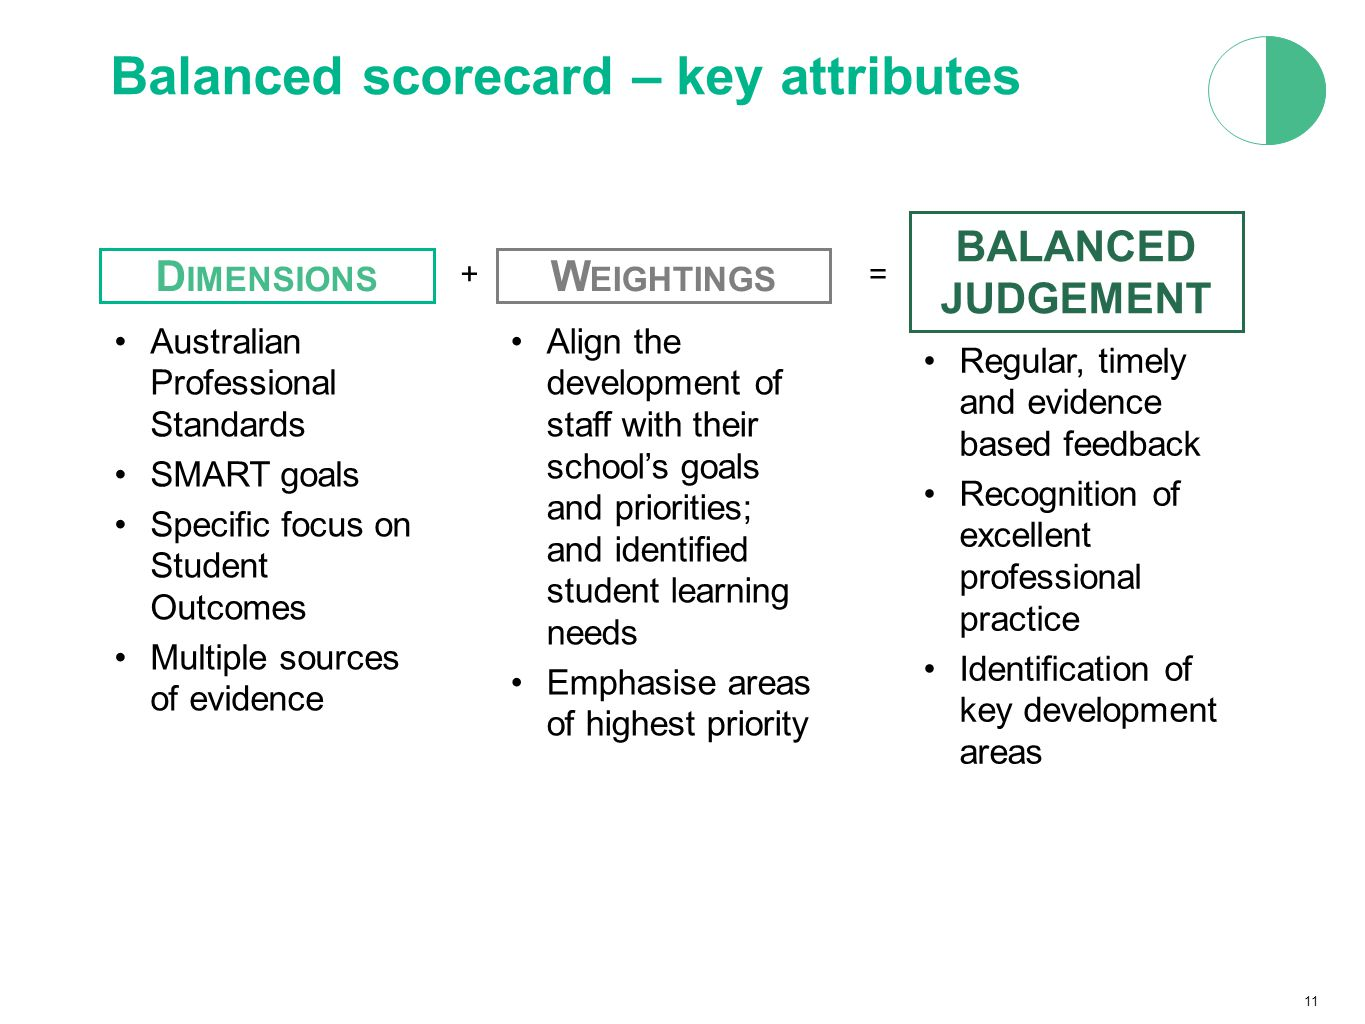 11 Balanced scorecard – key attributes Align the development of staff with their school's goals and priorities; and identified student learning needs Emphasise areas of highest priority Australian Professional Standards SMART goals Specific focus on Student Outcomes Multiple sources of evidence D IMENSIONS W EIGHTINGS += BALANCED JUDGEMENT Regular, timely and evidence based feedback Recognition of excellent professional practice Identification of key development areas